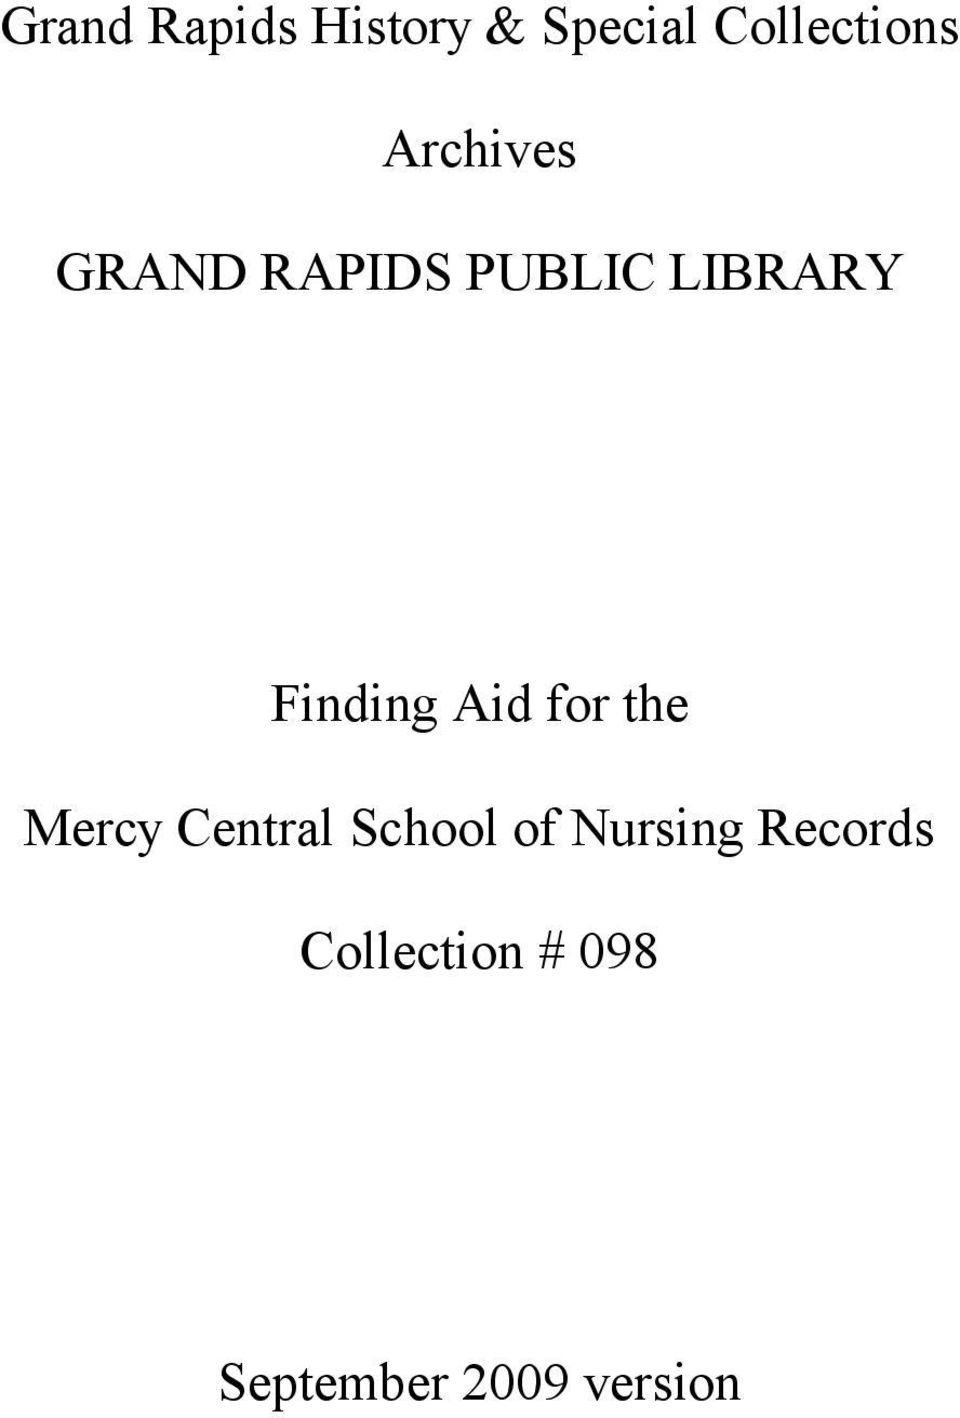 Aid for the Mercy Central School of Nursing